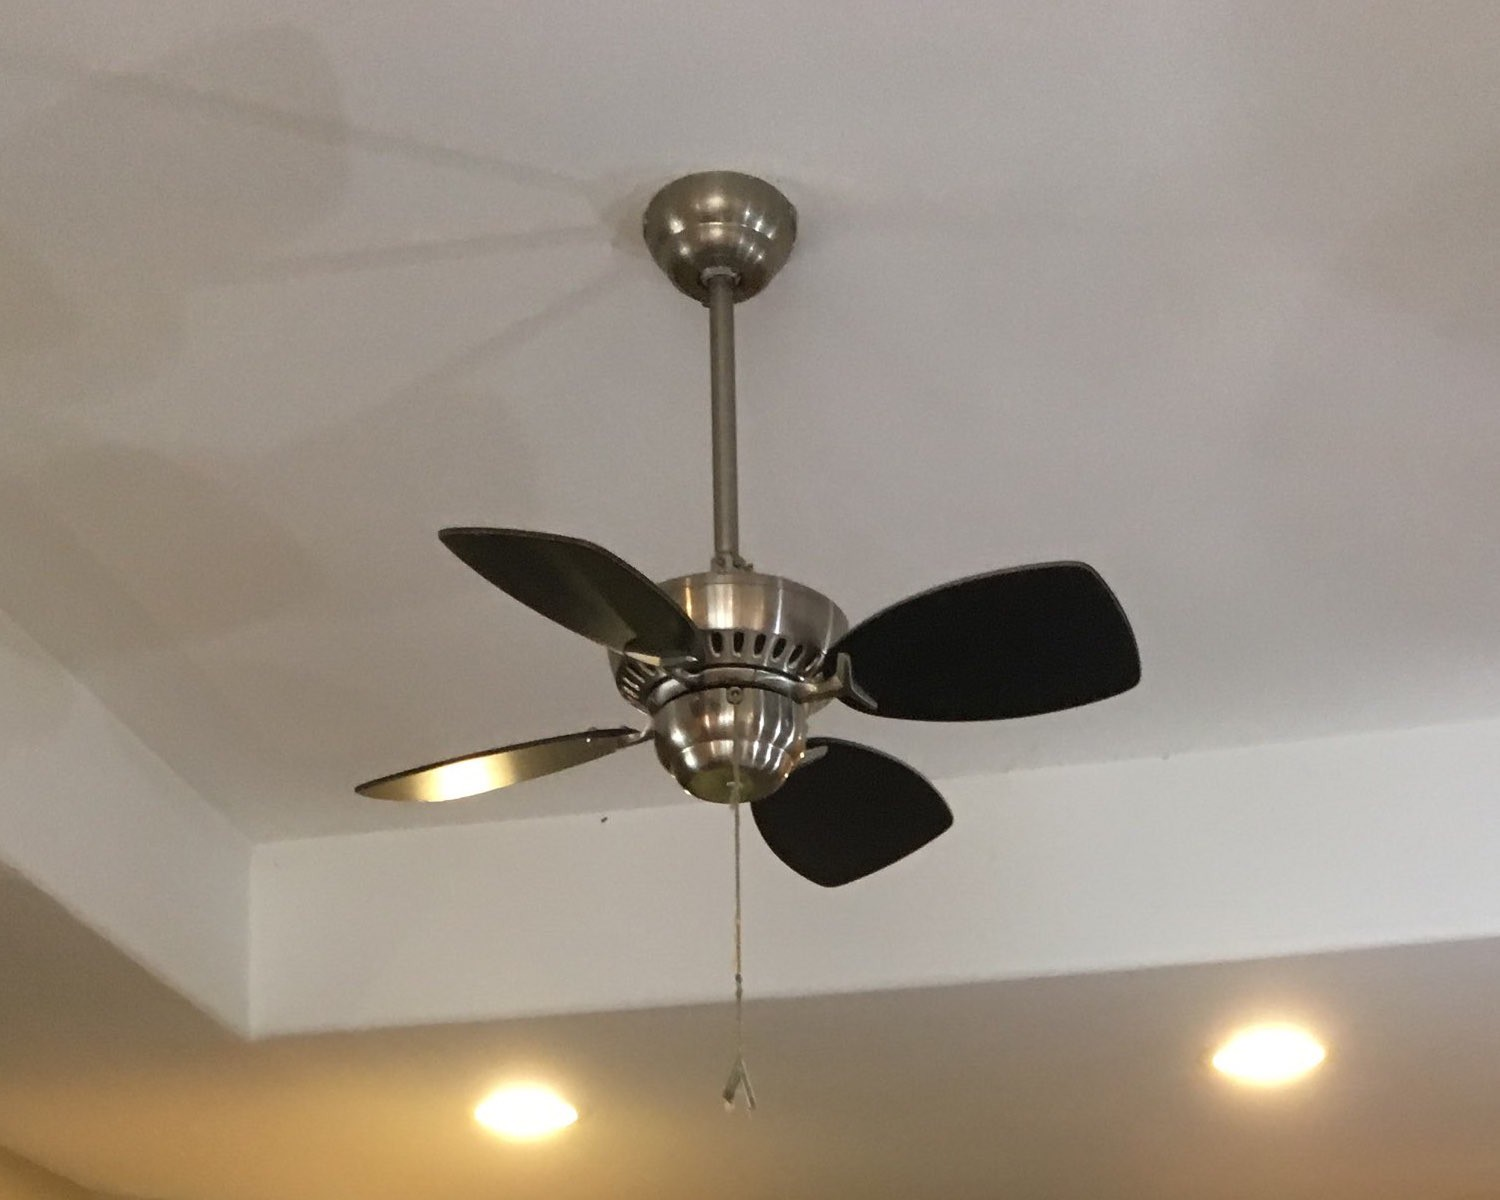 hight resolution of 7 things you may not know about ceiling fans